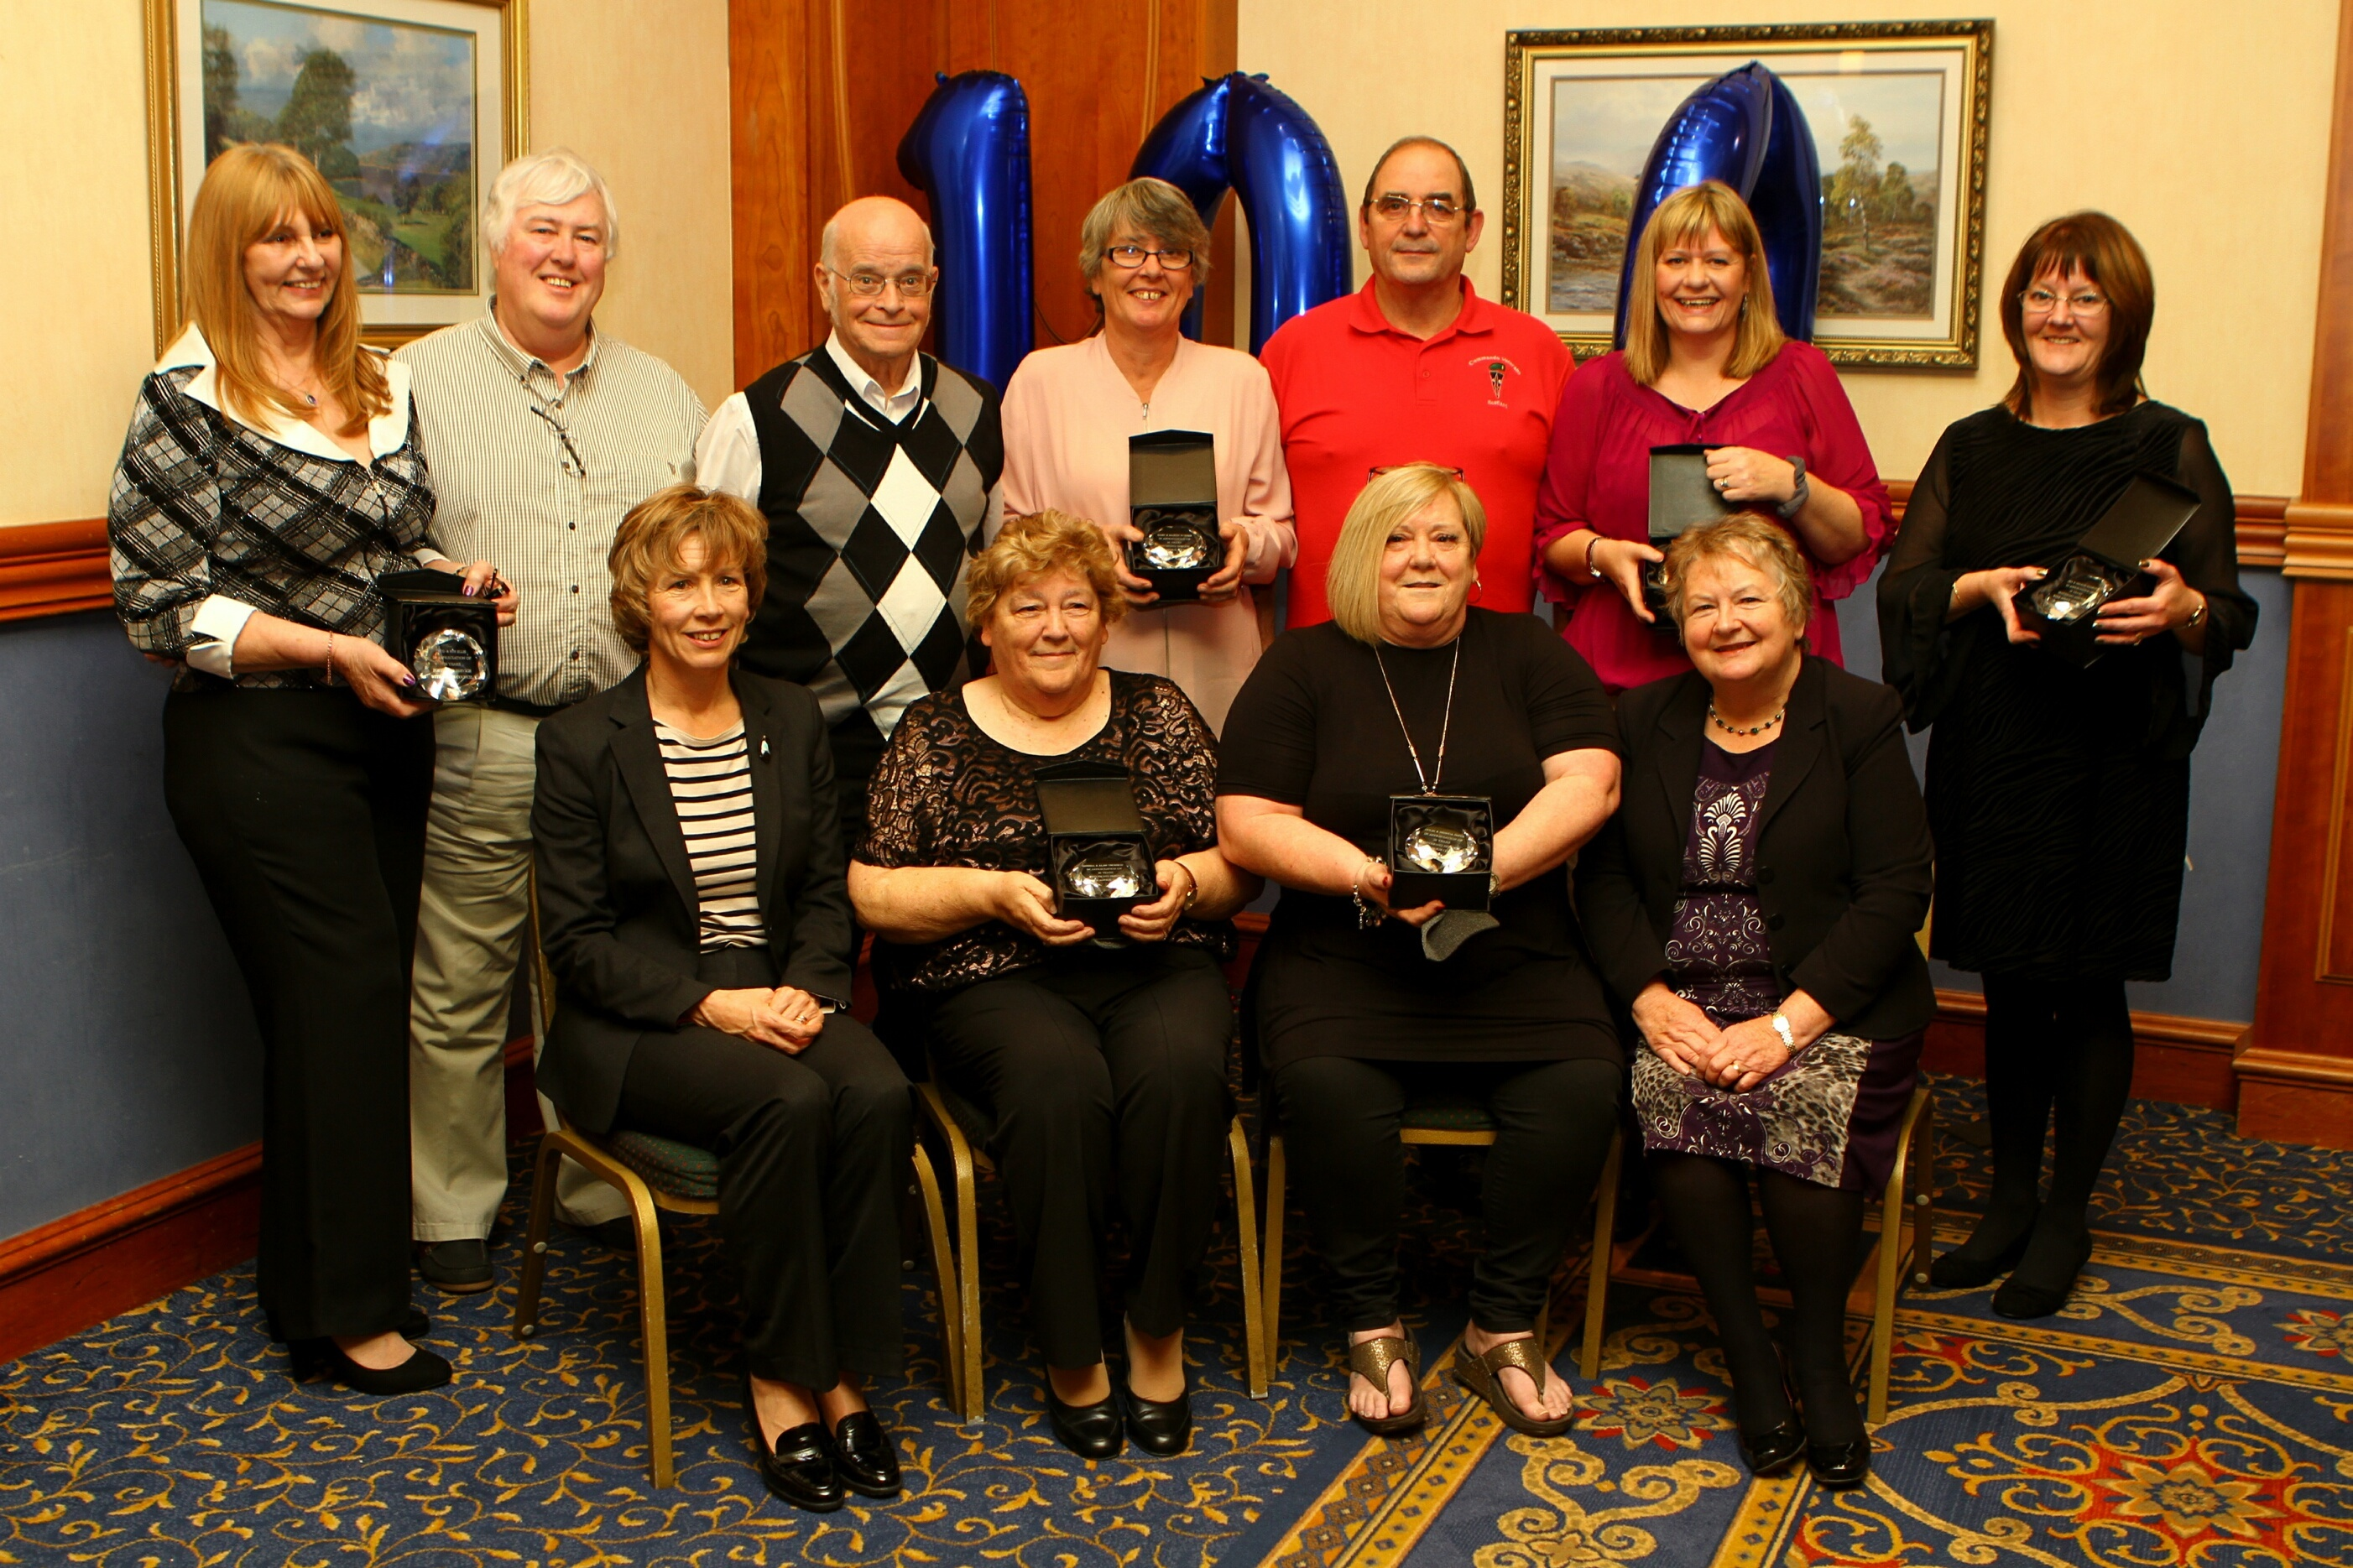 The long service award recipients at the Angus Council Foster Carers annual ceremony. Front L/R: Margo Williamson - Strategic Director, Sheena Thomson, Brenda Smith and Cllr Sheena Welsh - Convenor of Children & Learning. Back L/R: Susan and Rodney Ellis, Allan Thomson, Mary Towner, Colin Smith, Michelle Dewar and Jill Hamilton.